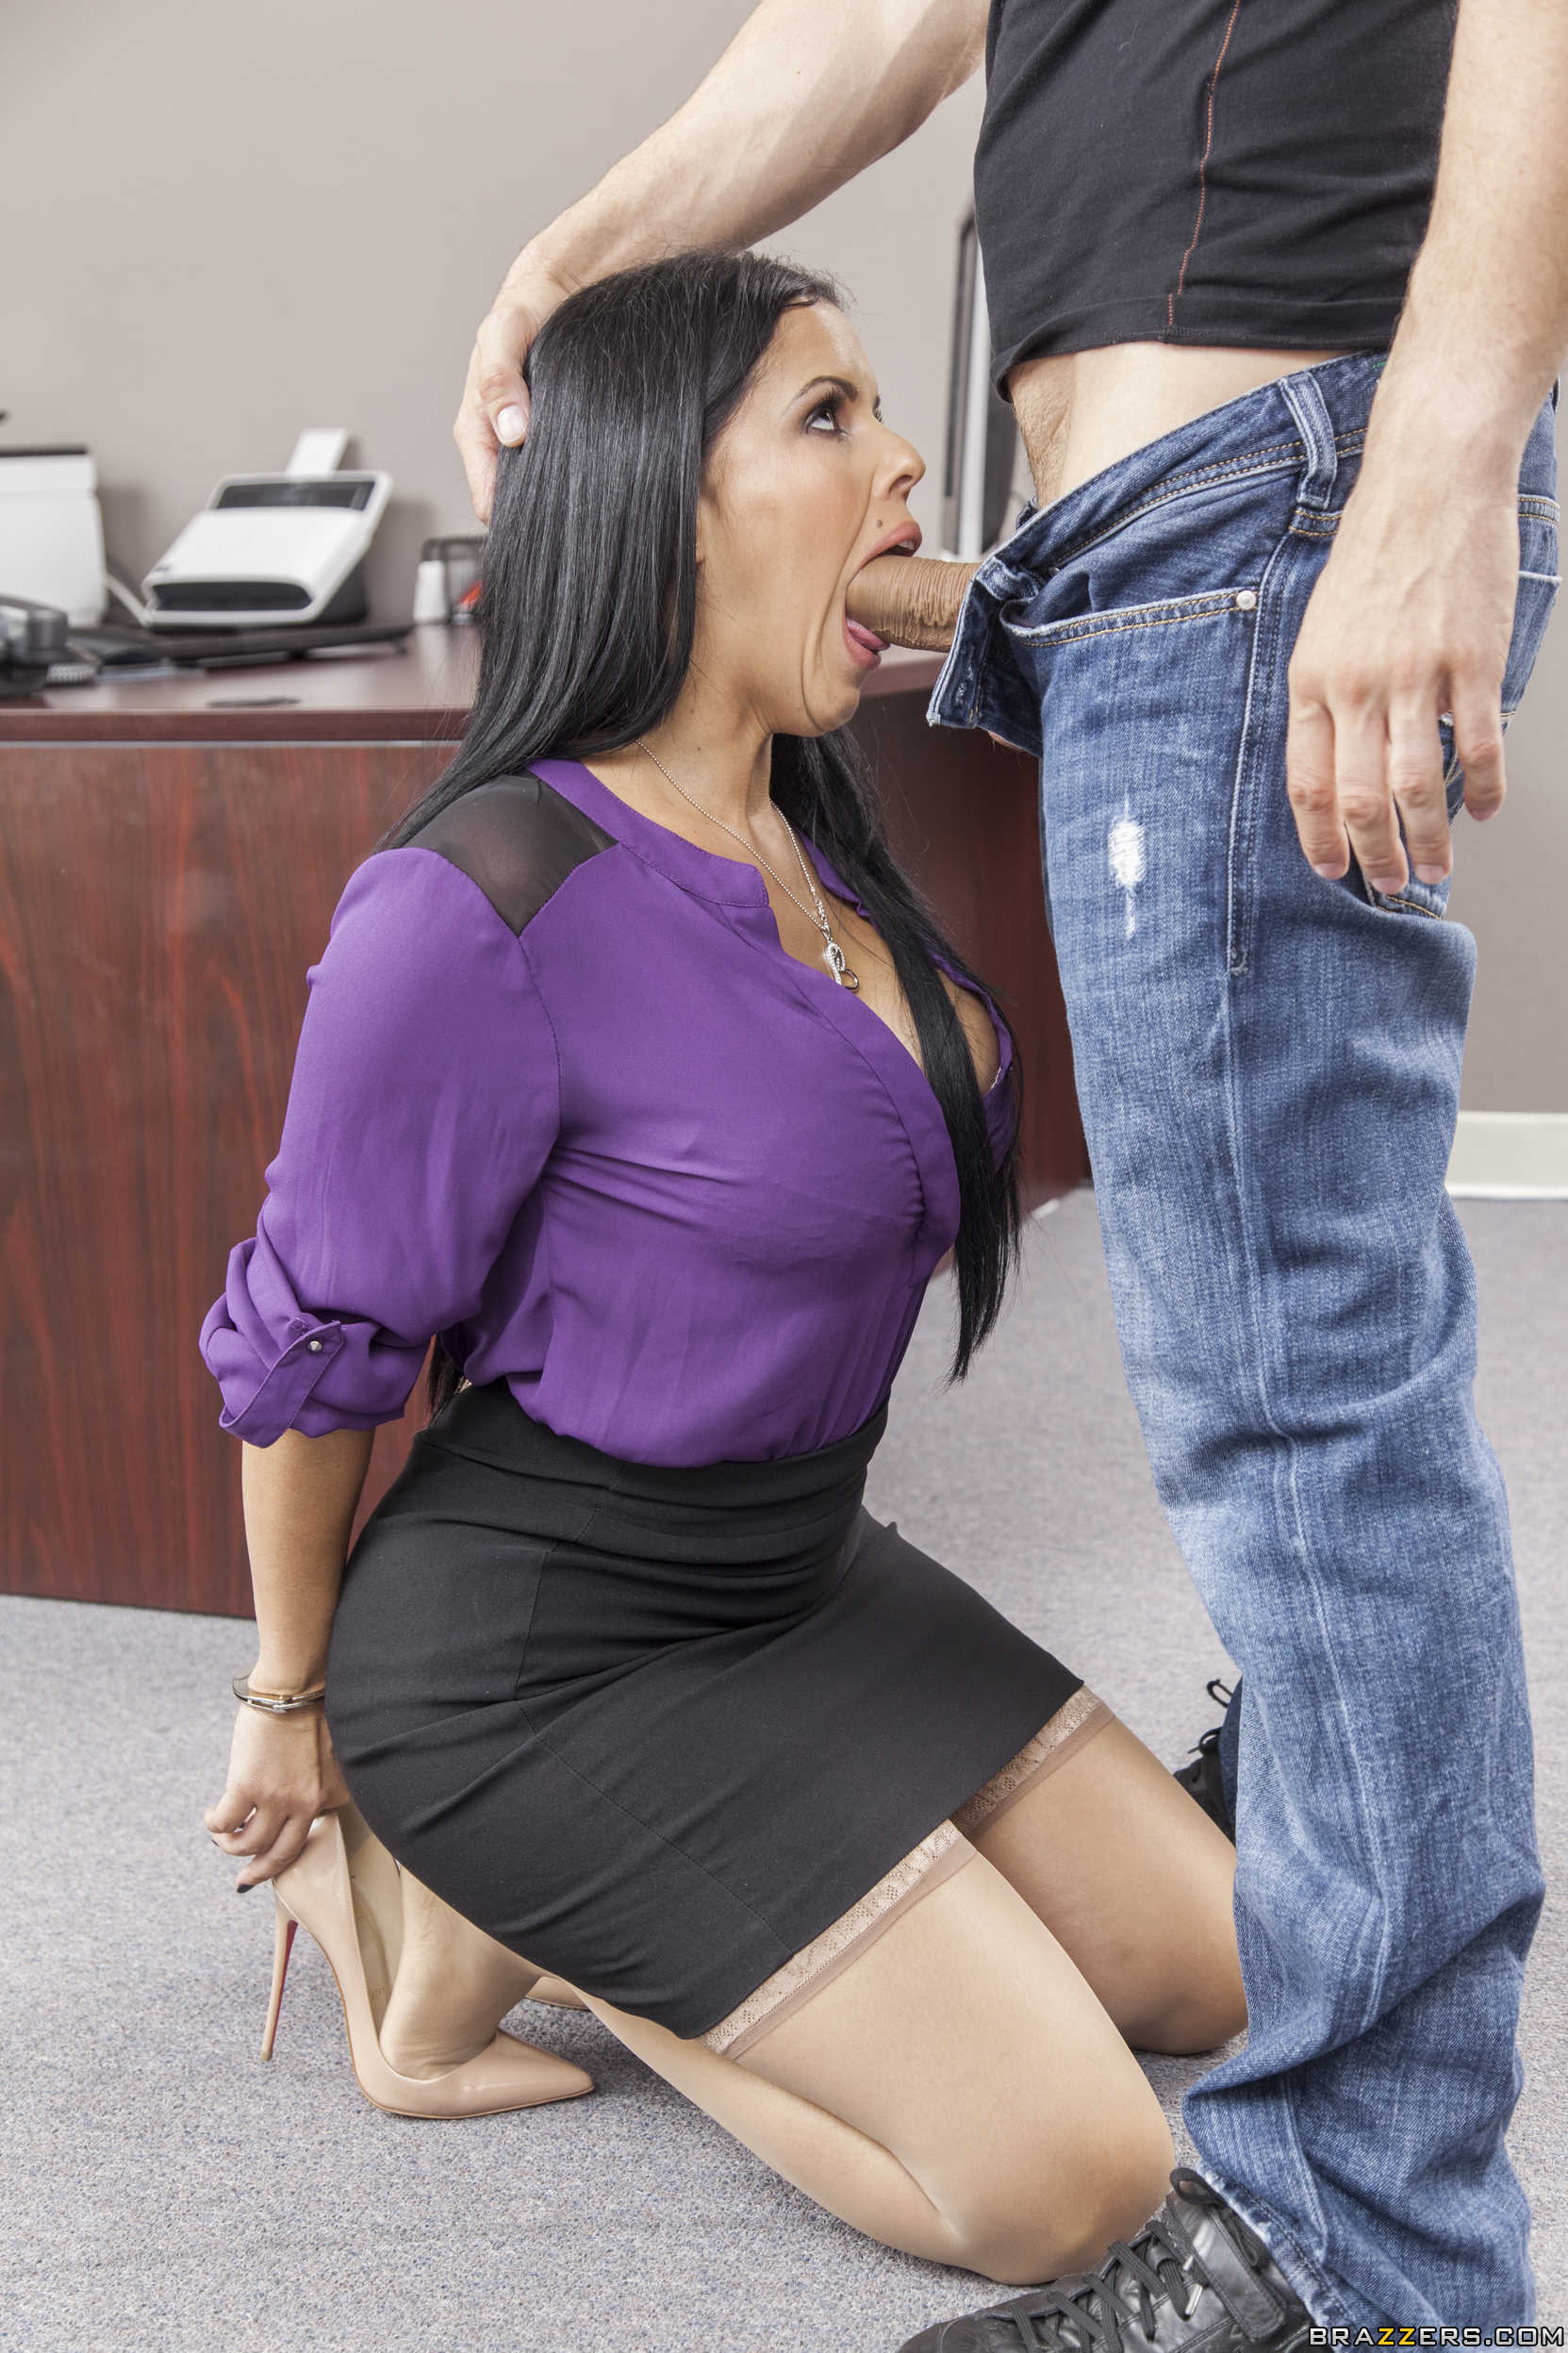 Secretary gives anal on business trip - 1 part 4